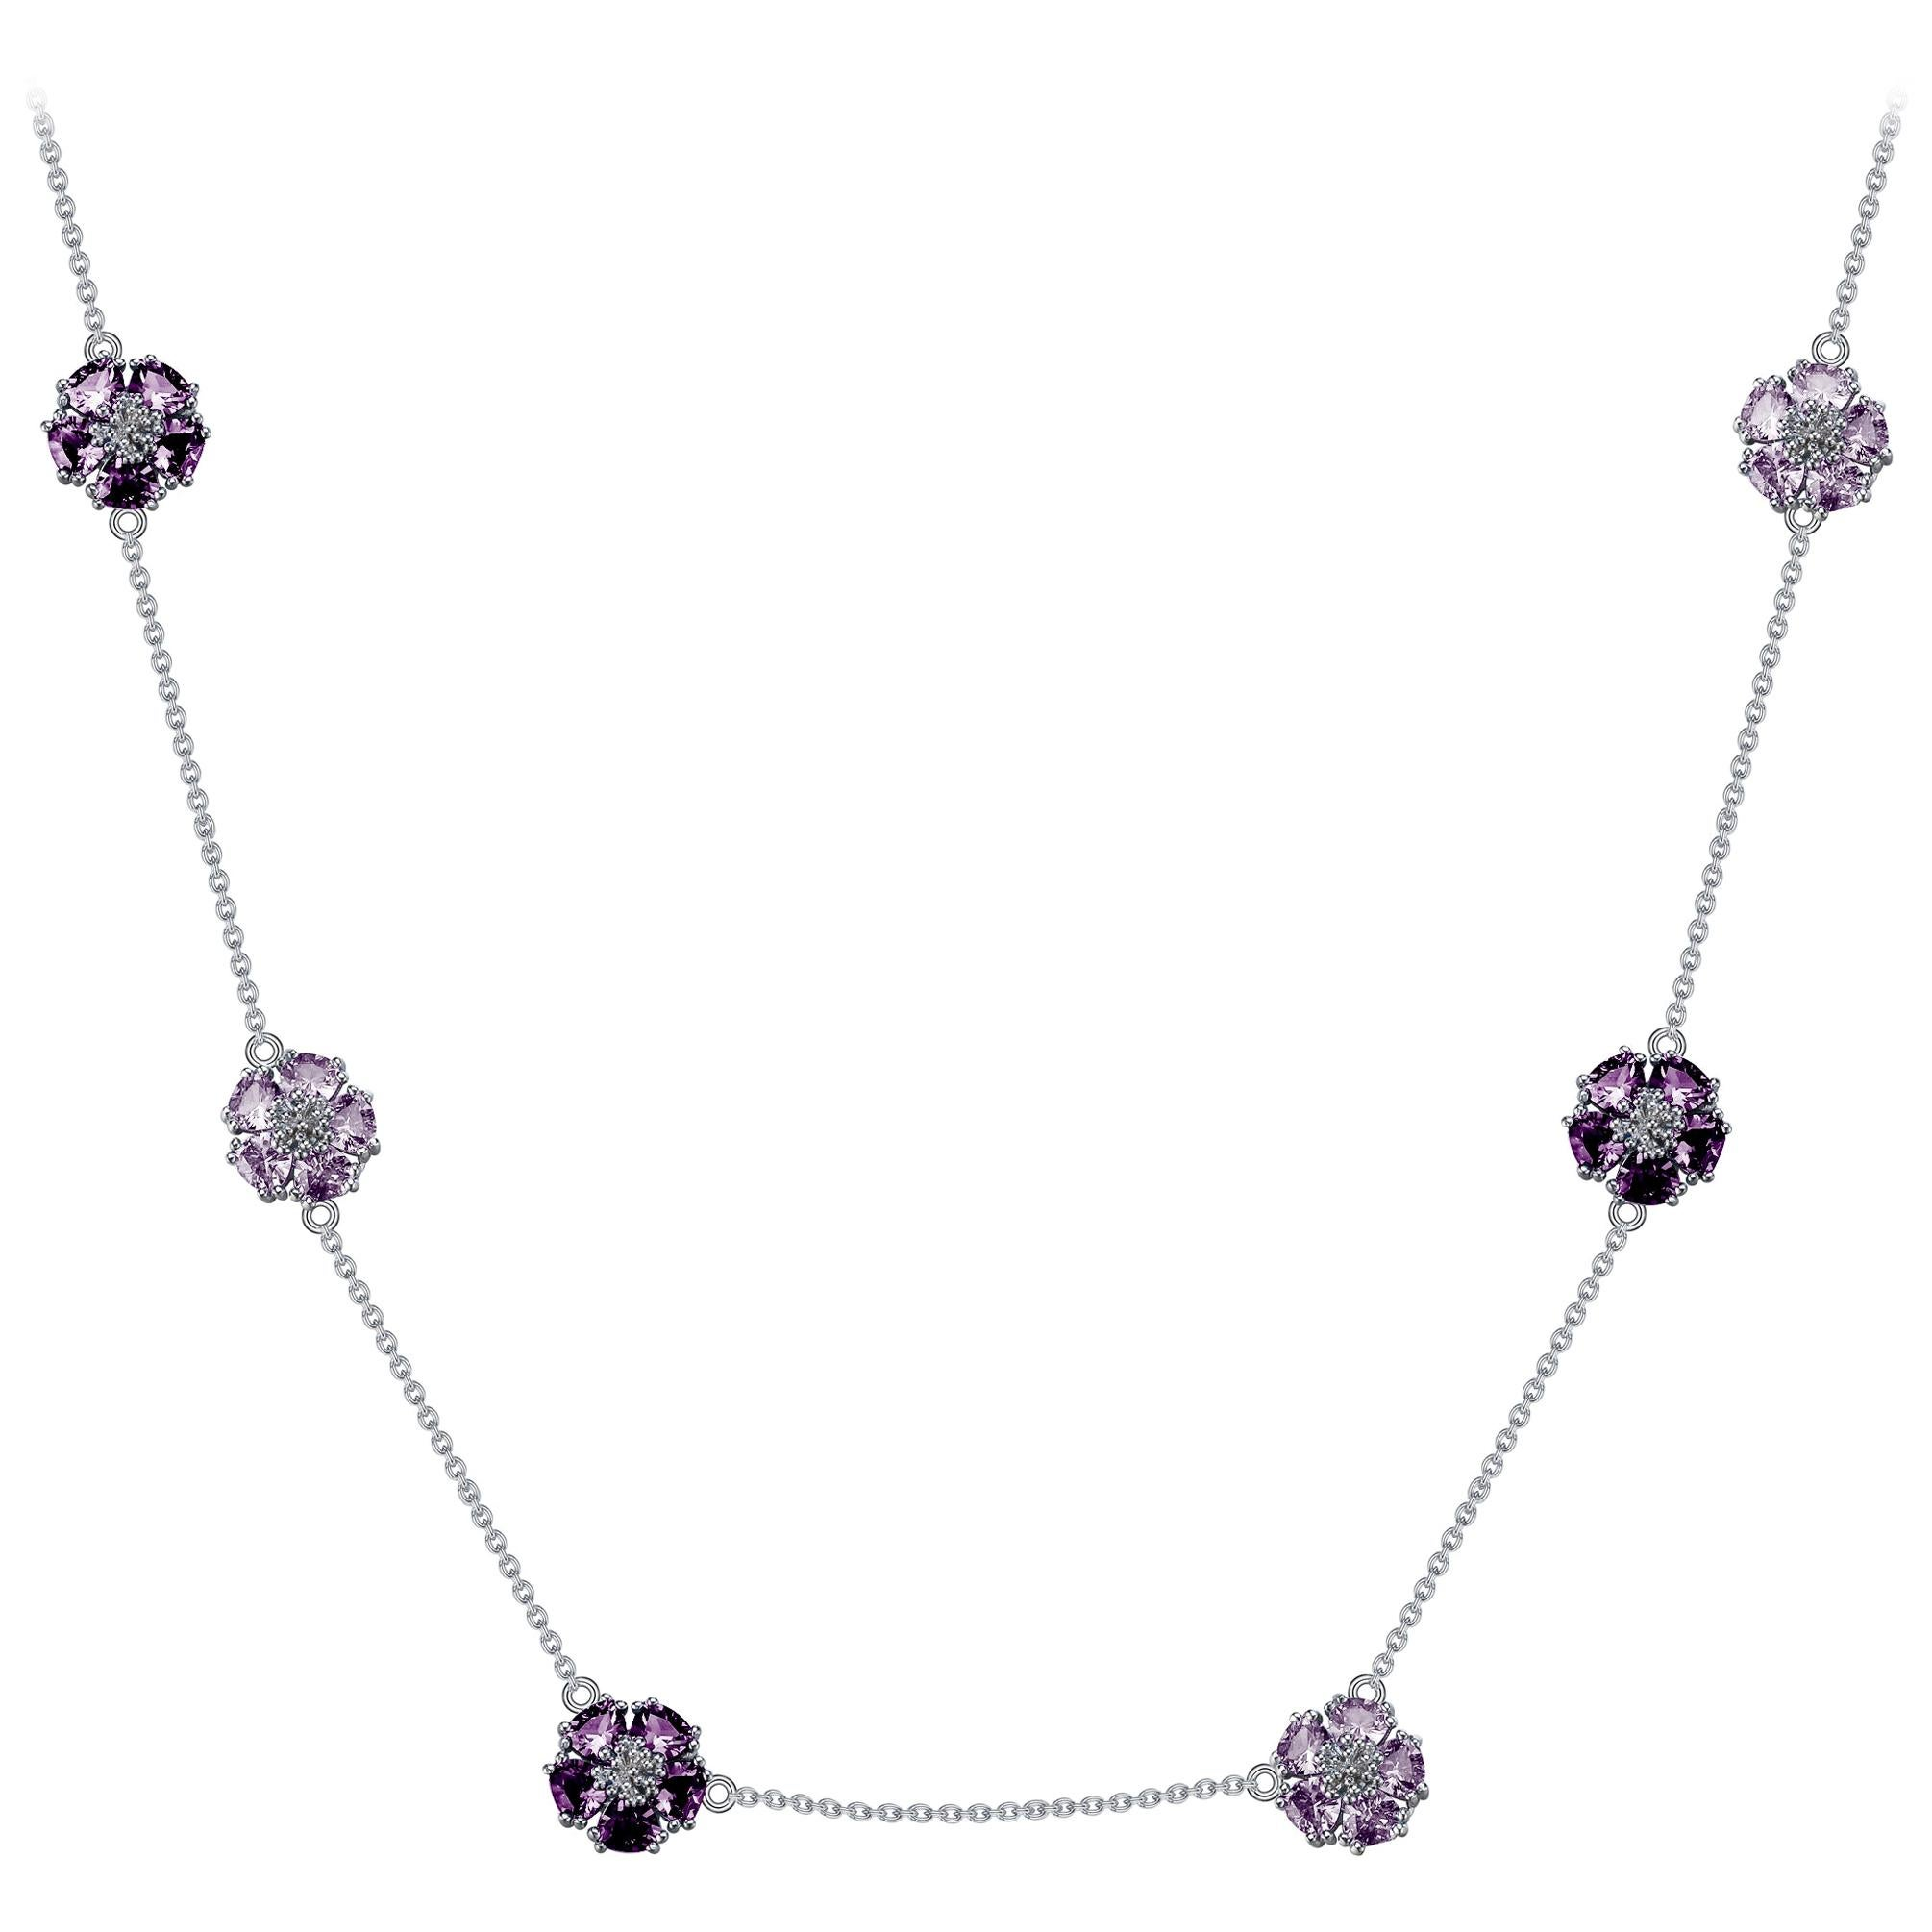 Amethyst and Lavender Amethyst Blossom Gentile Chain Necklace